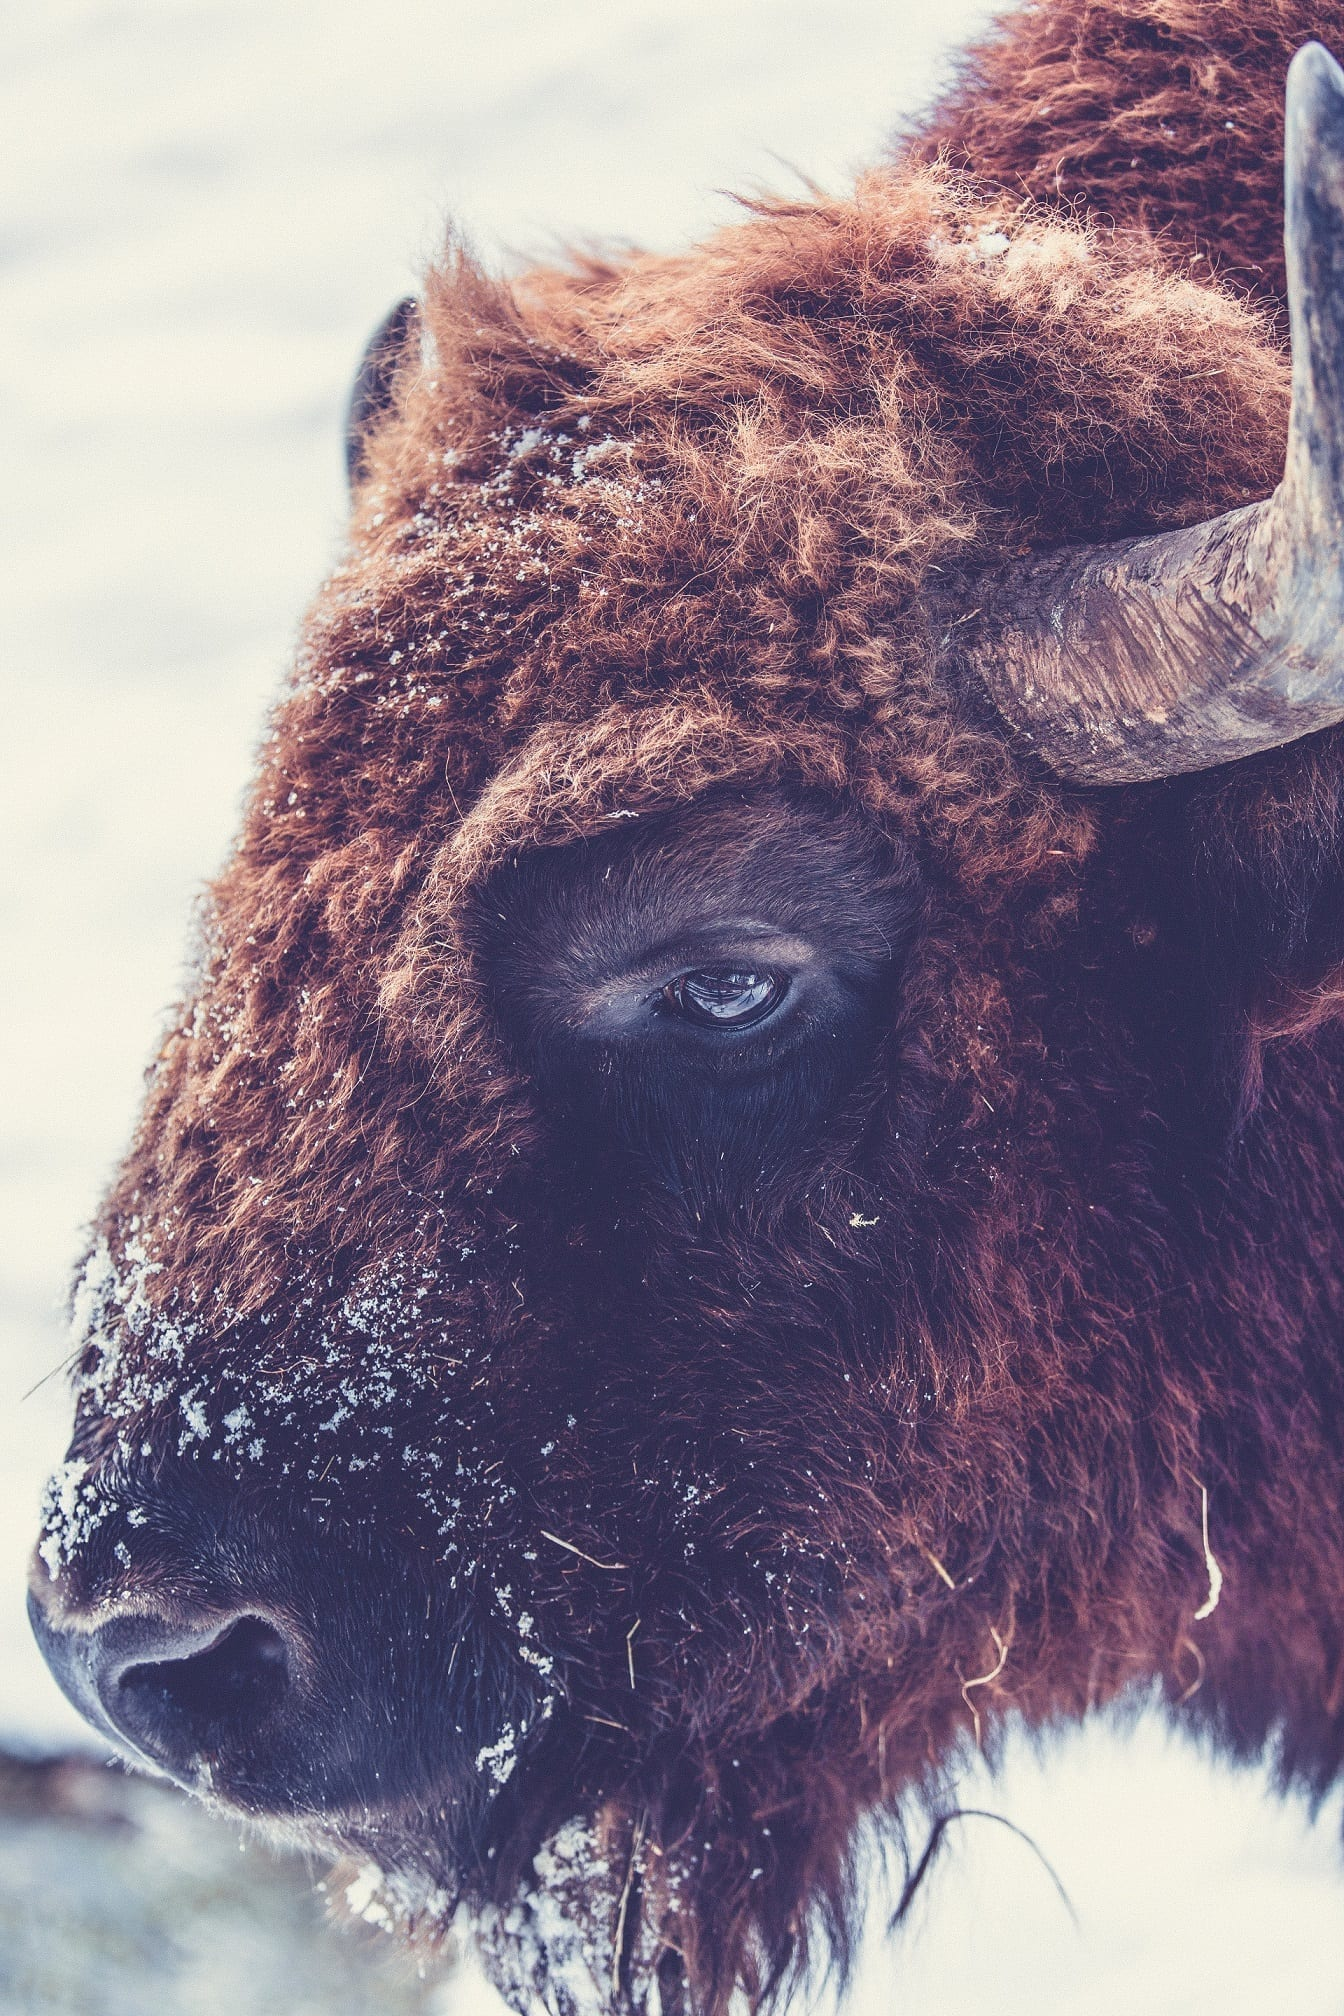 Man Arrested After Being Caught on Camera Harassing Bison